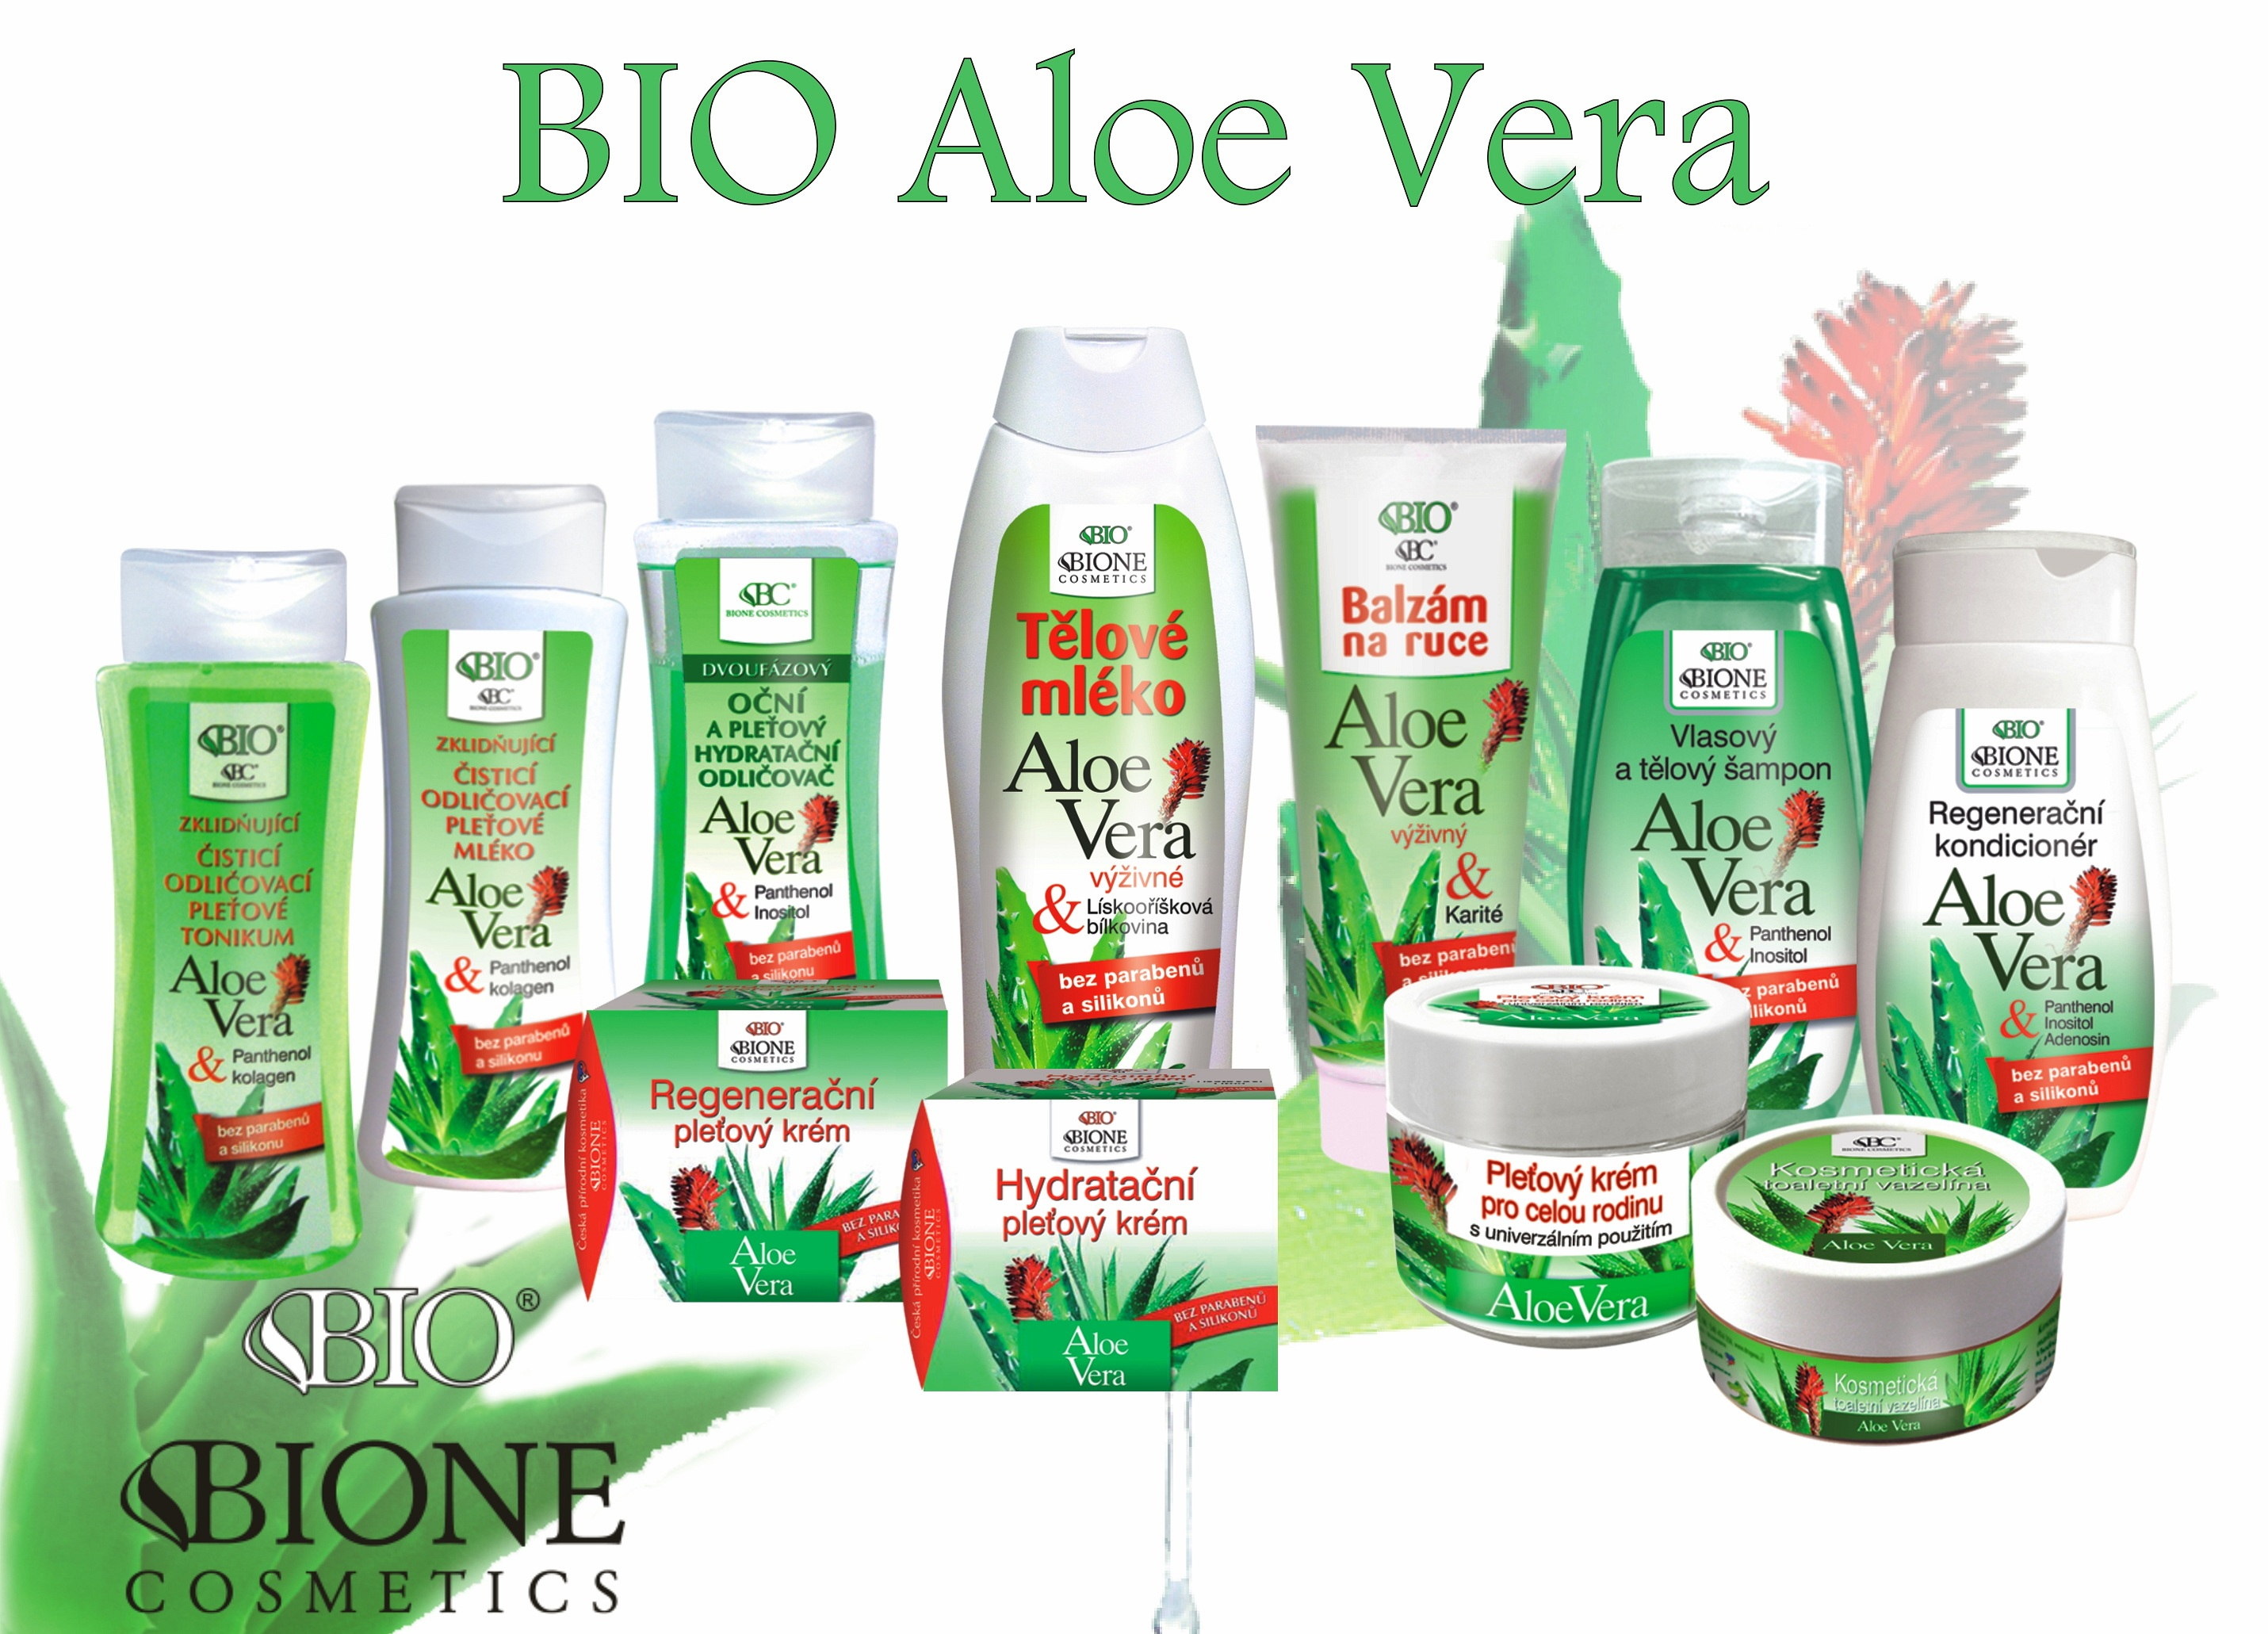 BIO-ALOE-VERA-all-products-new_kopie.jpg